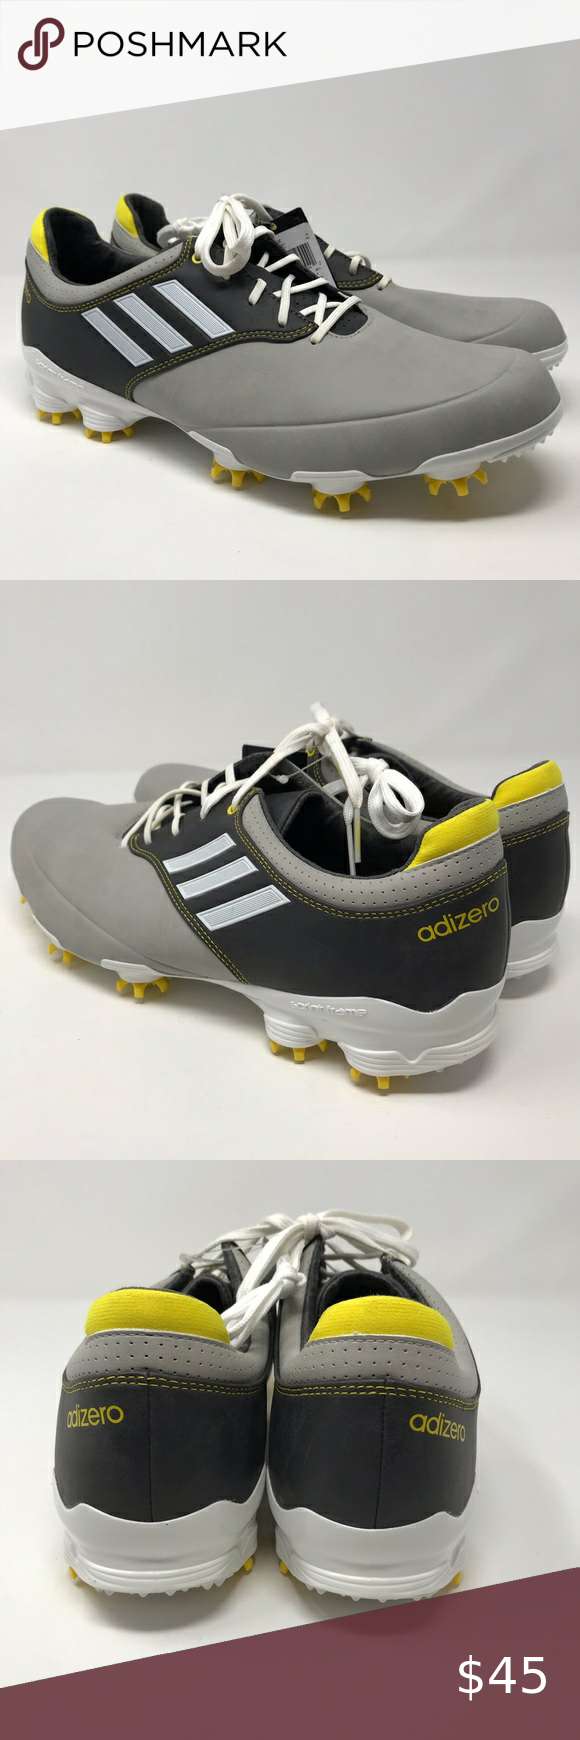 Entrelazamiento atención volumen  Adidas | Men's Adizero Tour Golf Shoes Size 10.5 | Adidas men, Golf shoes,  Shoes mens